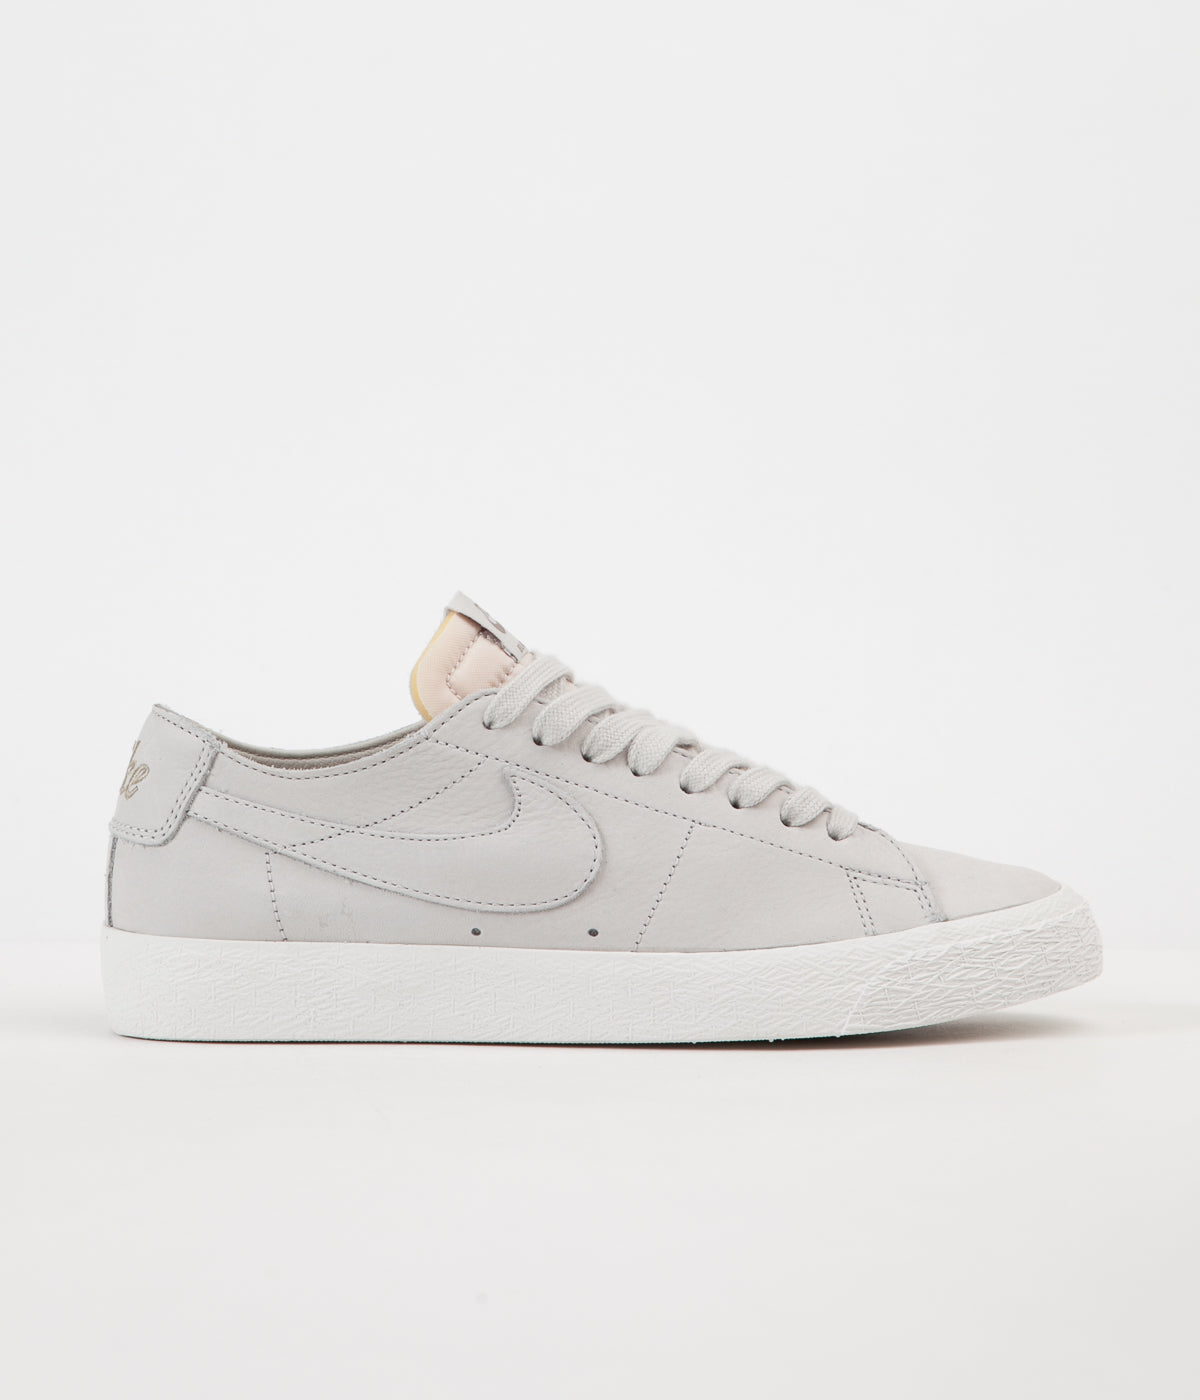 Nike SB Blazer Low Deconstructed Shoes - Light Bone   Light Bone - Khaki bfe8d95b4